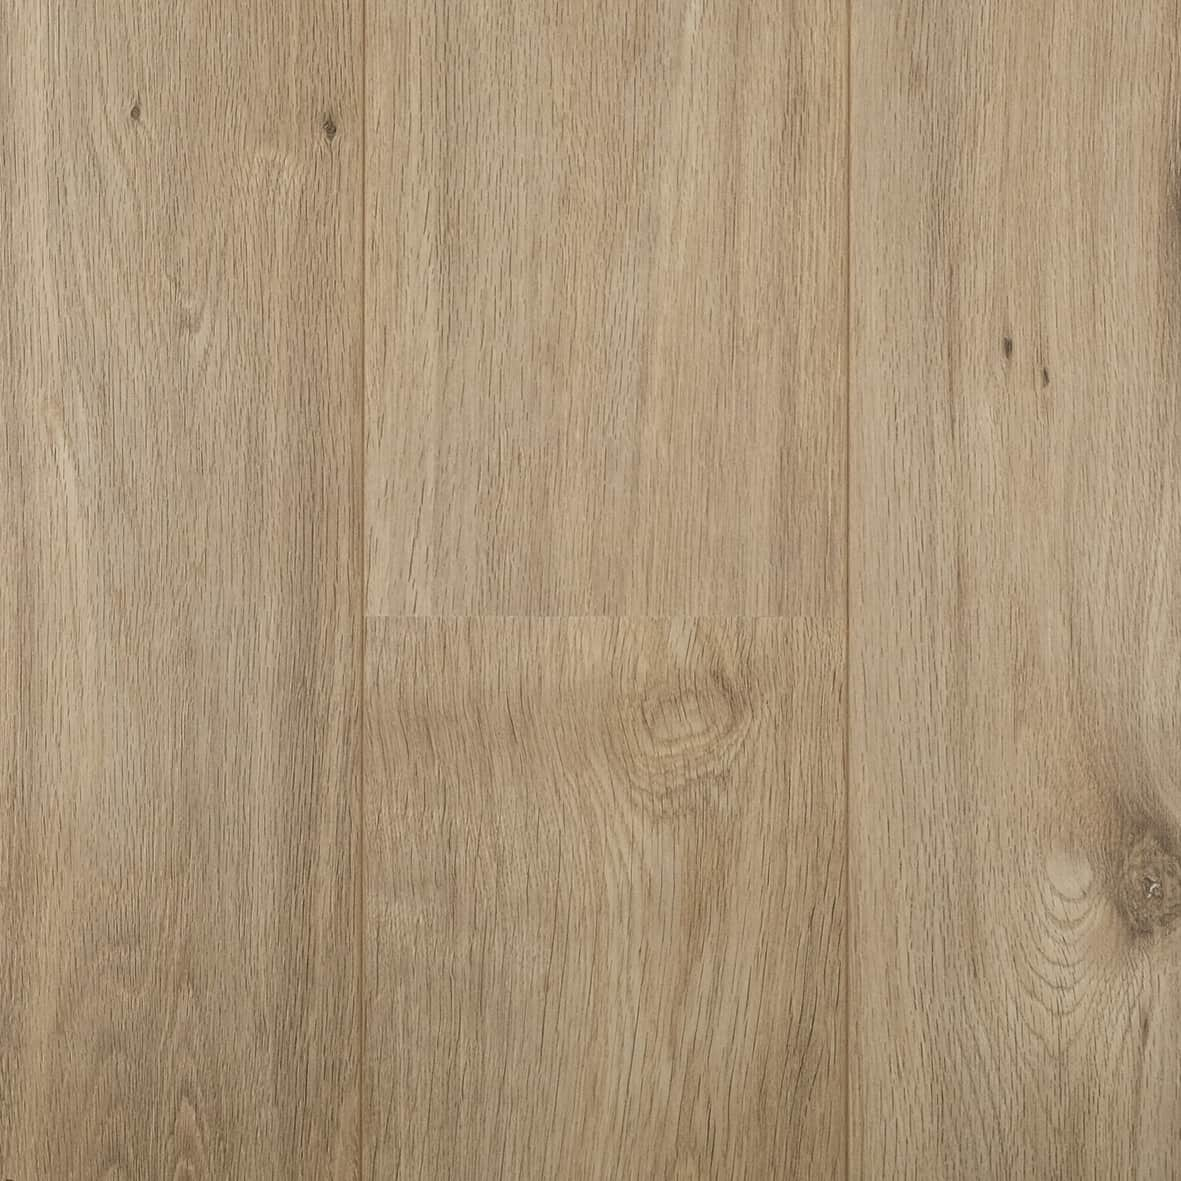 Living 1061 V2 Light Oak 7 Mm